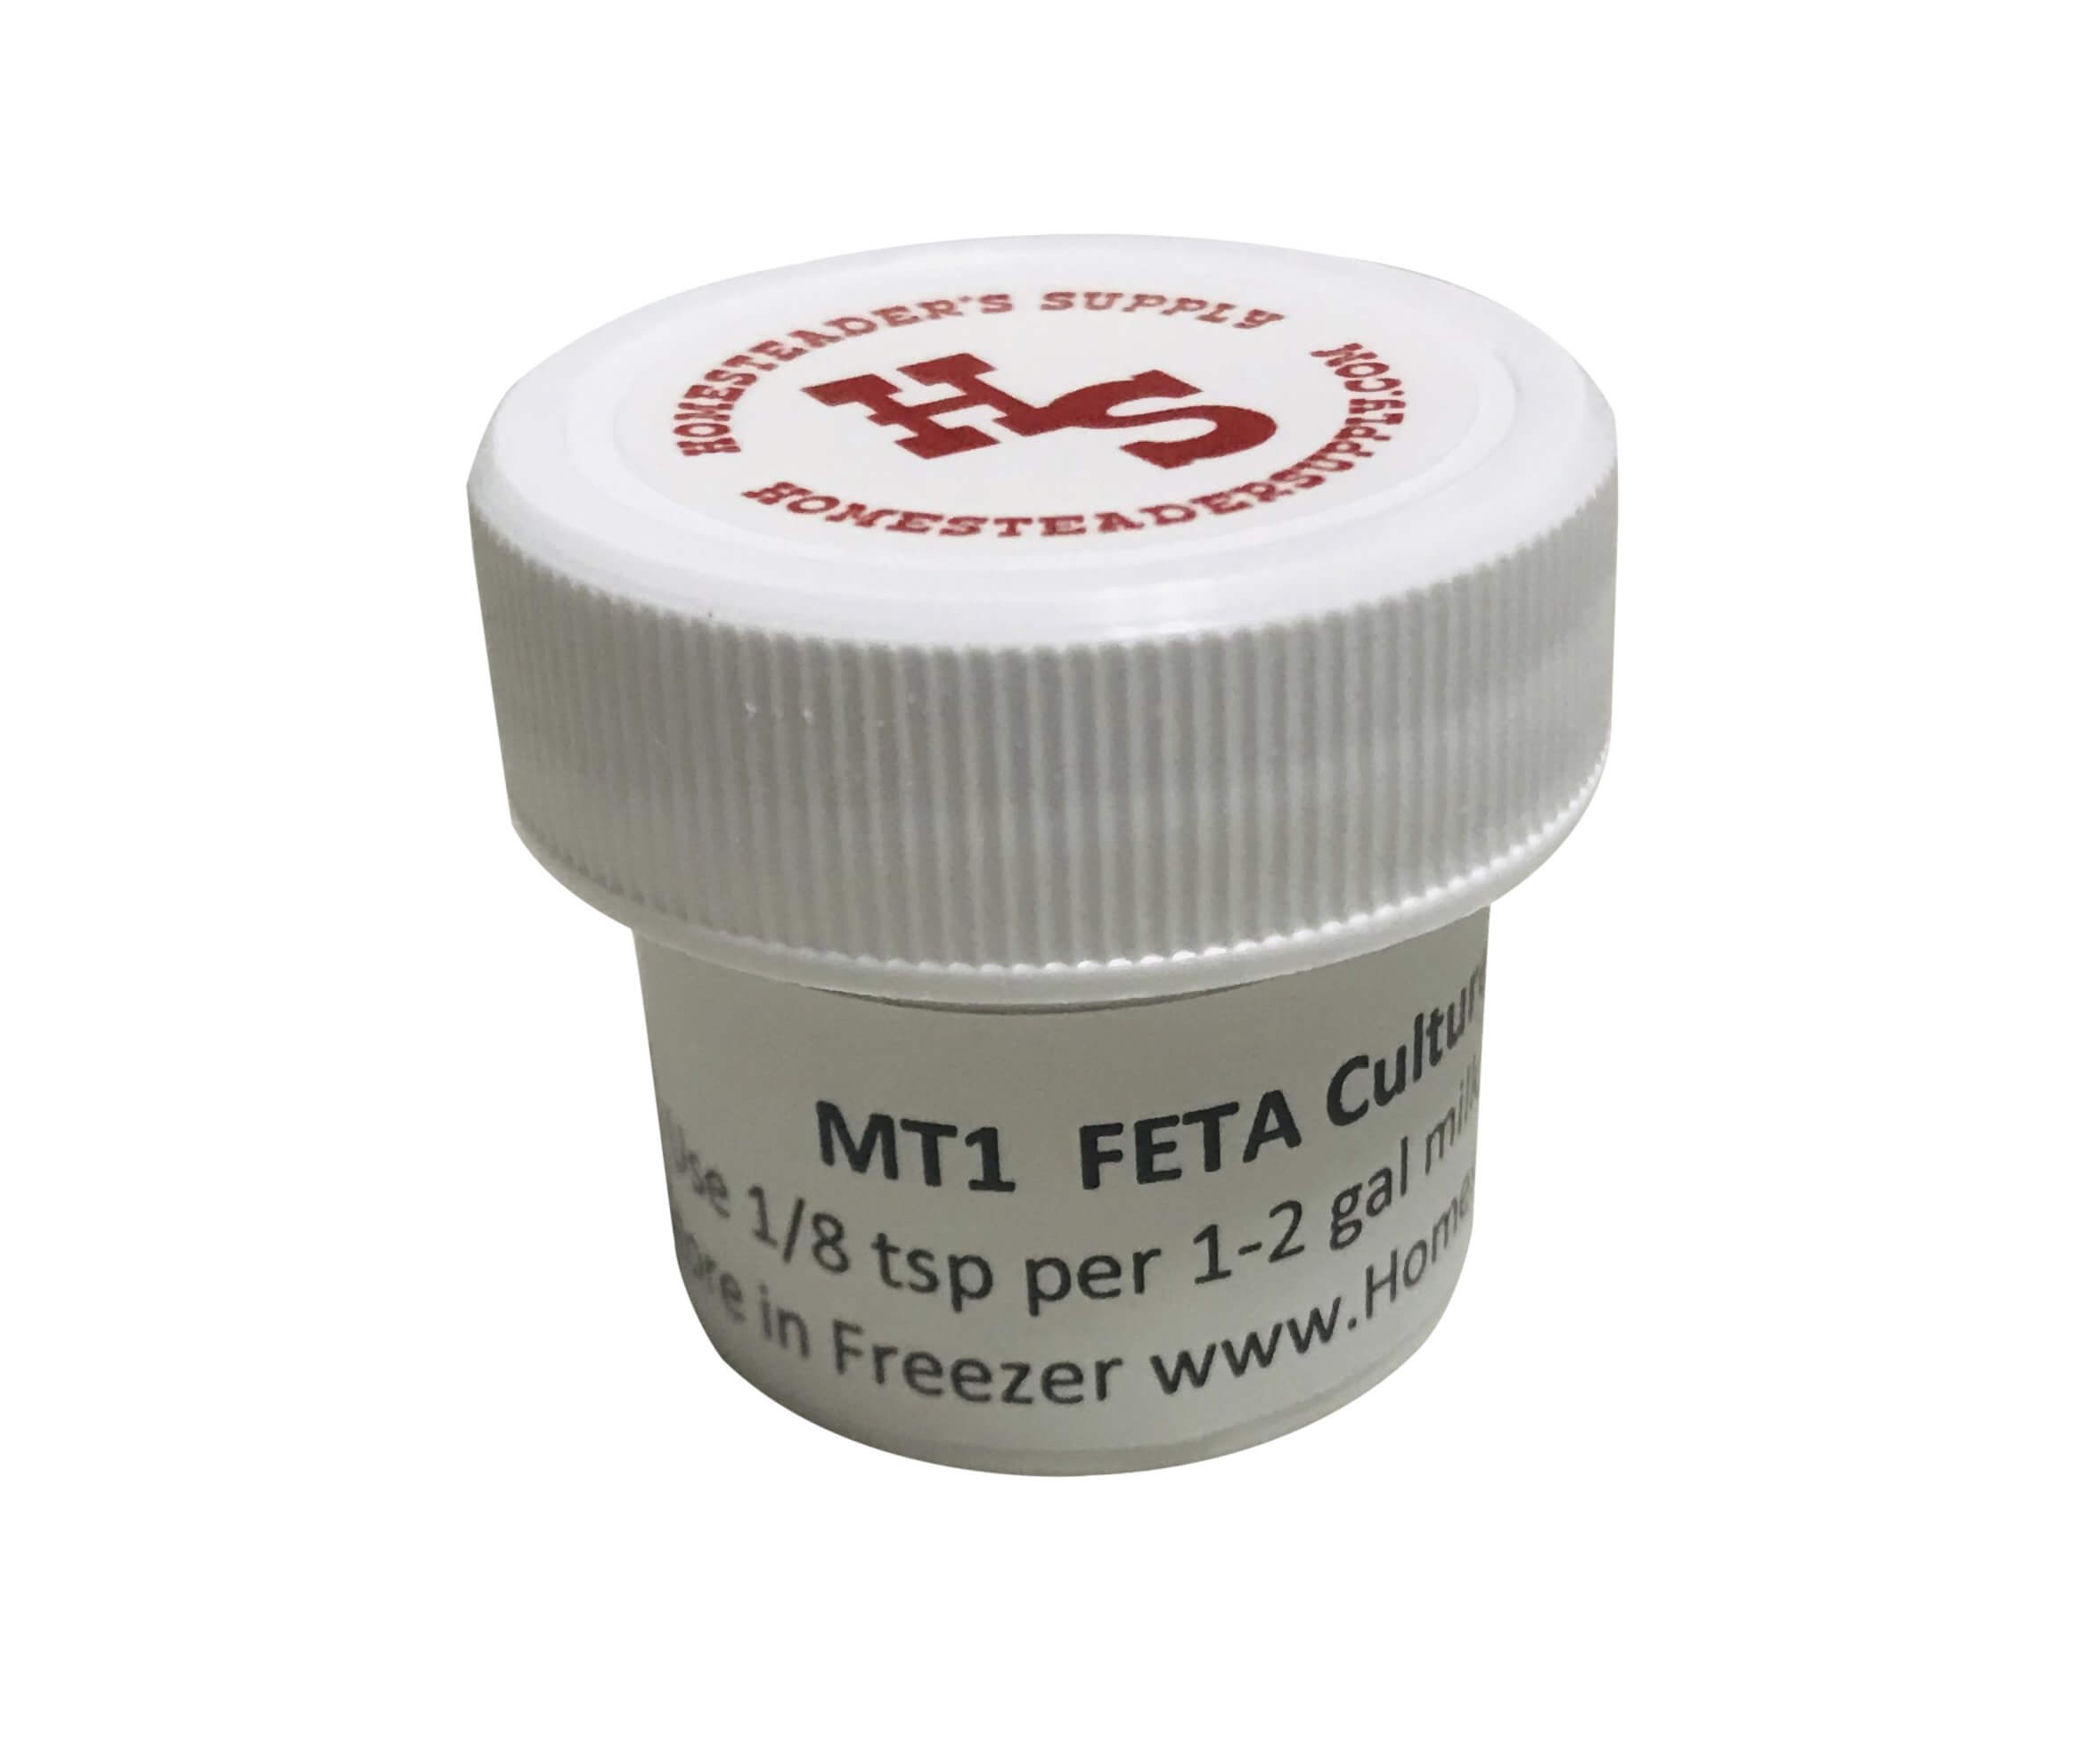 Feta MT1 Cheese Culture